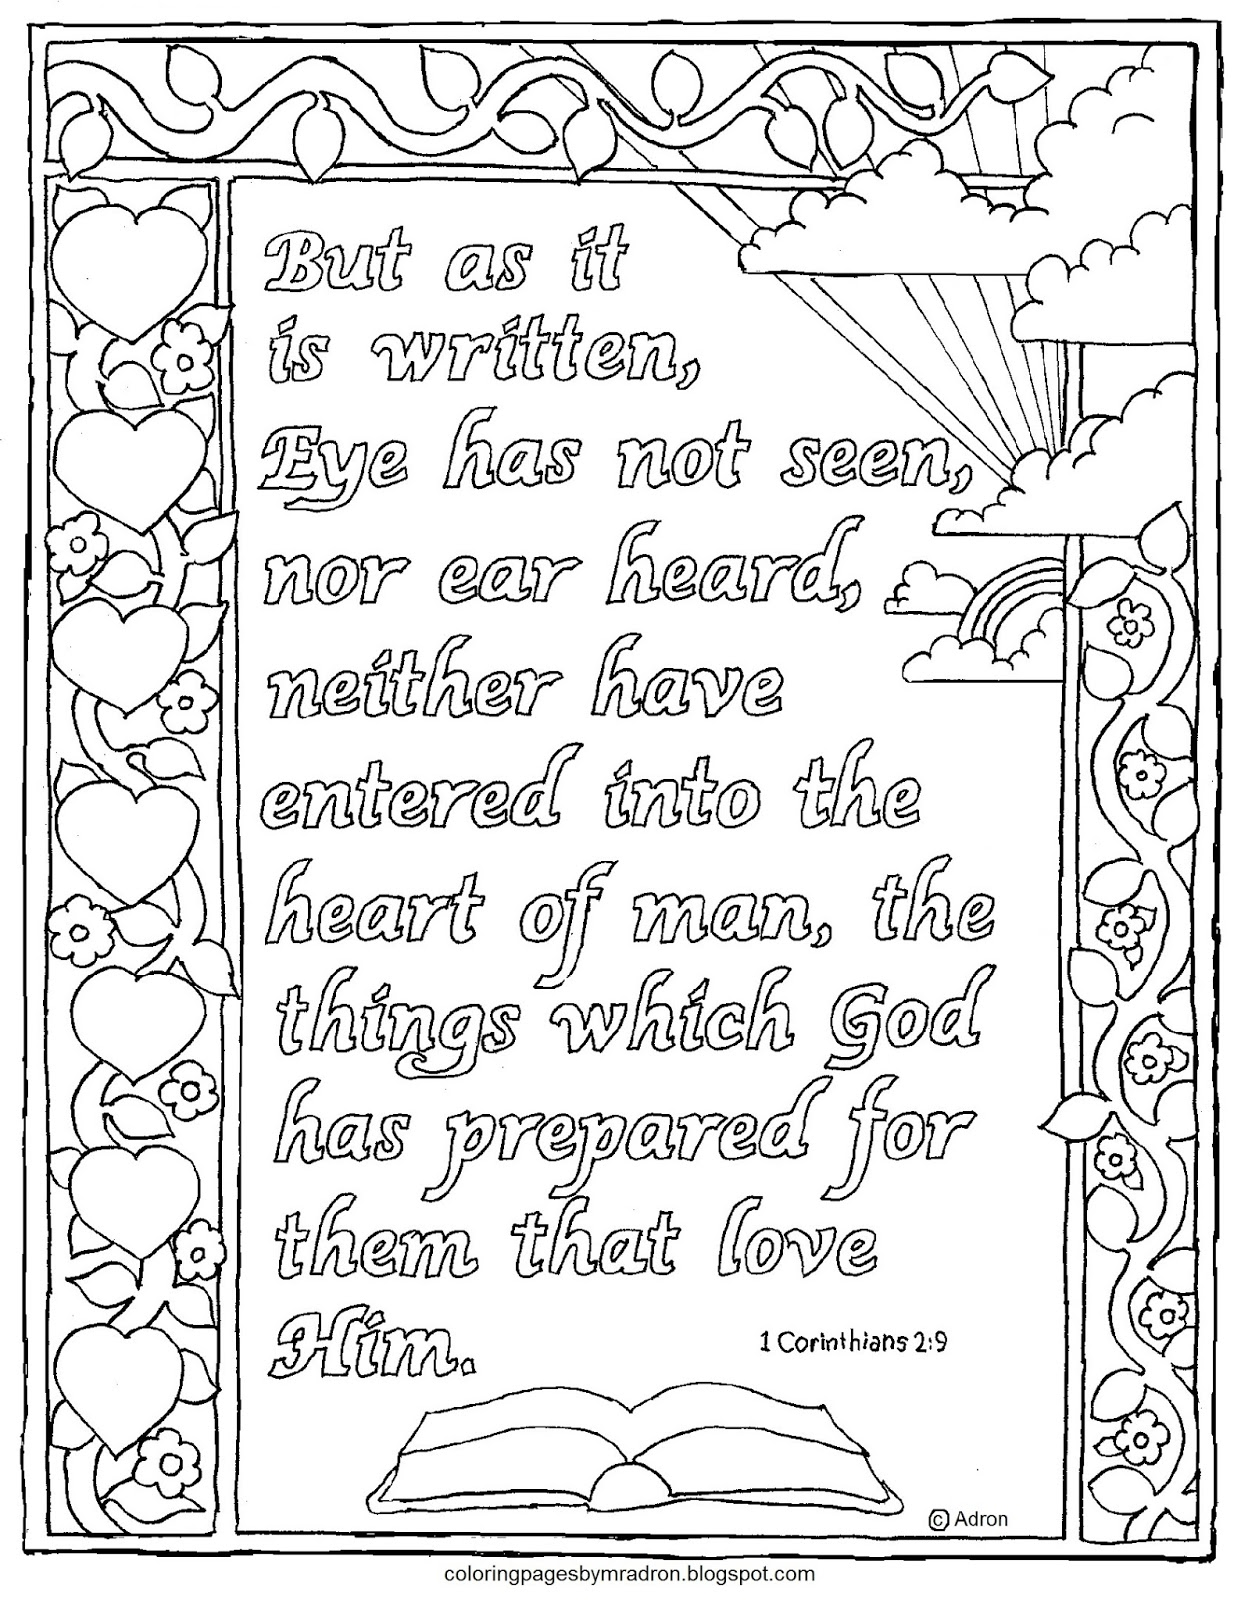 Coloring Pages For Kids By Mr Adron 1 Corinthians 29